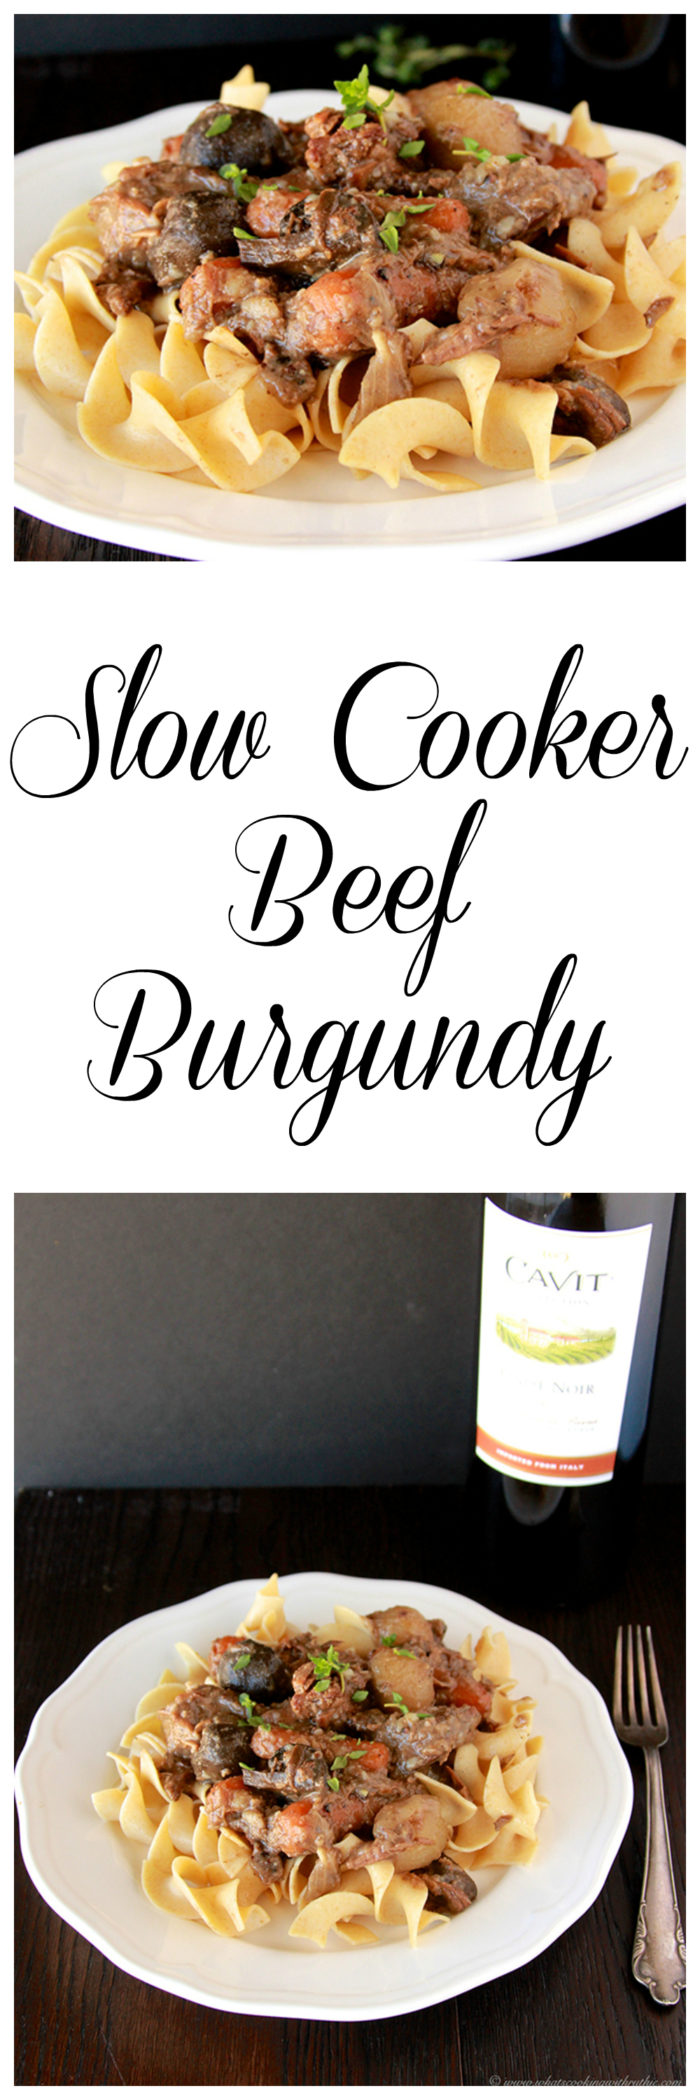 Slow Cooker Beef Burgundy on www.cookingwithruthie.com is one of our families favorite dinners- beef and vegetables over pasta is just wonderful!